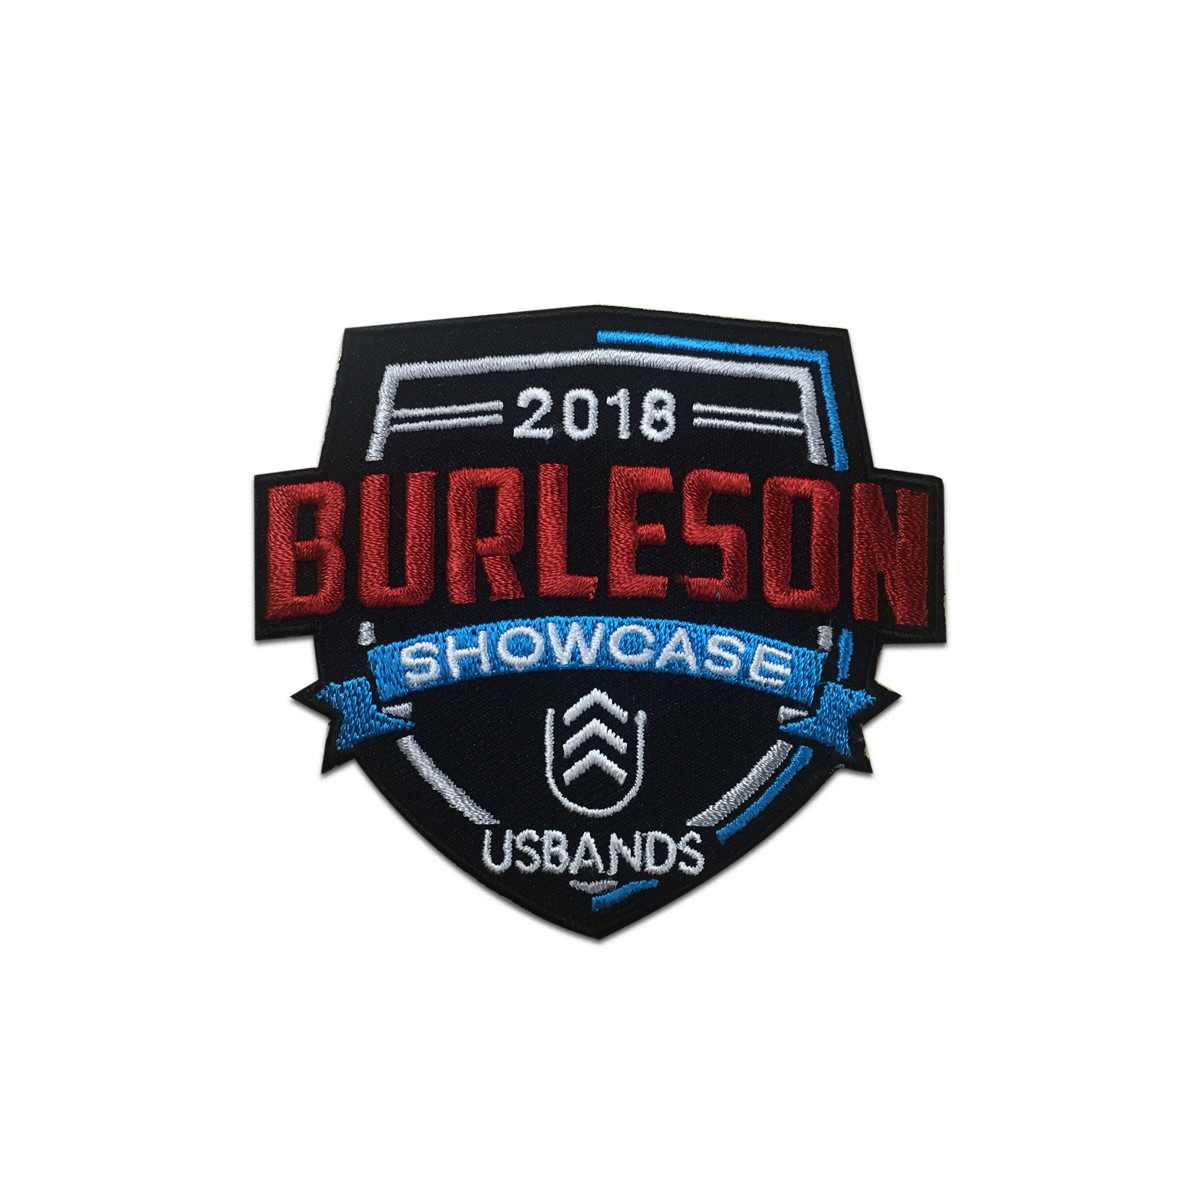 2018 USBands Burleson Showcase Event Patch